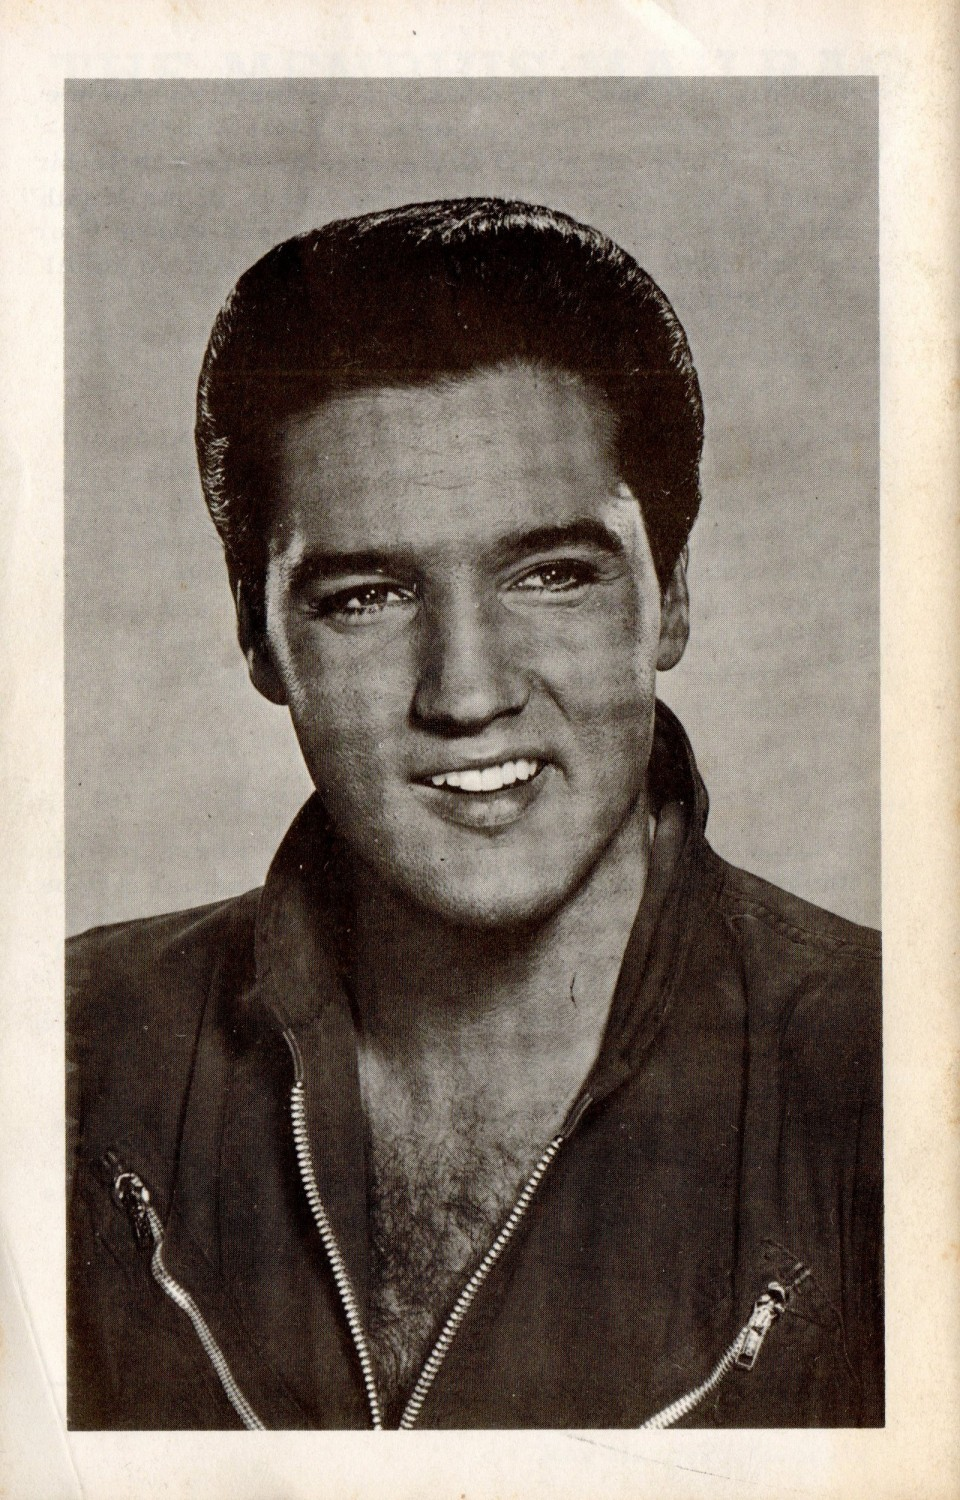 Strictly Elvis No 5 (September 1968) 36 back